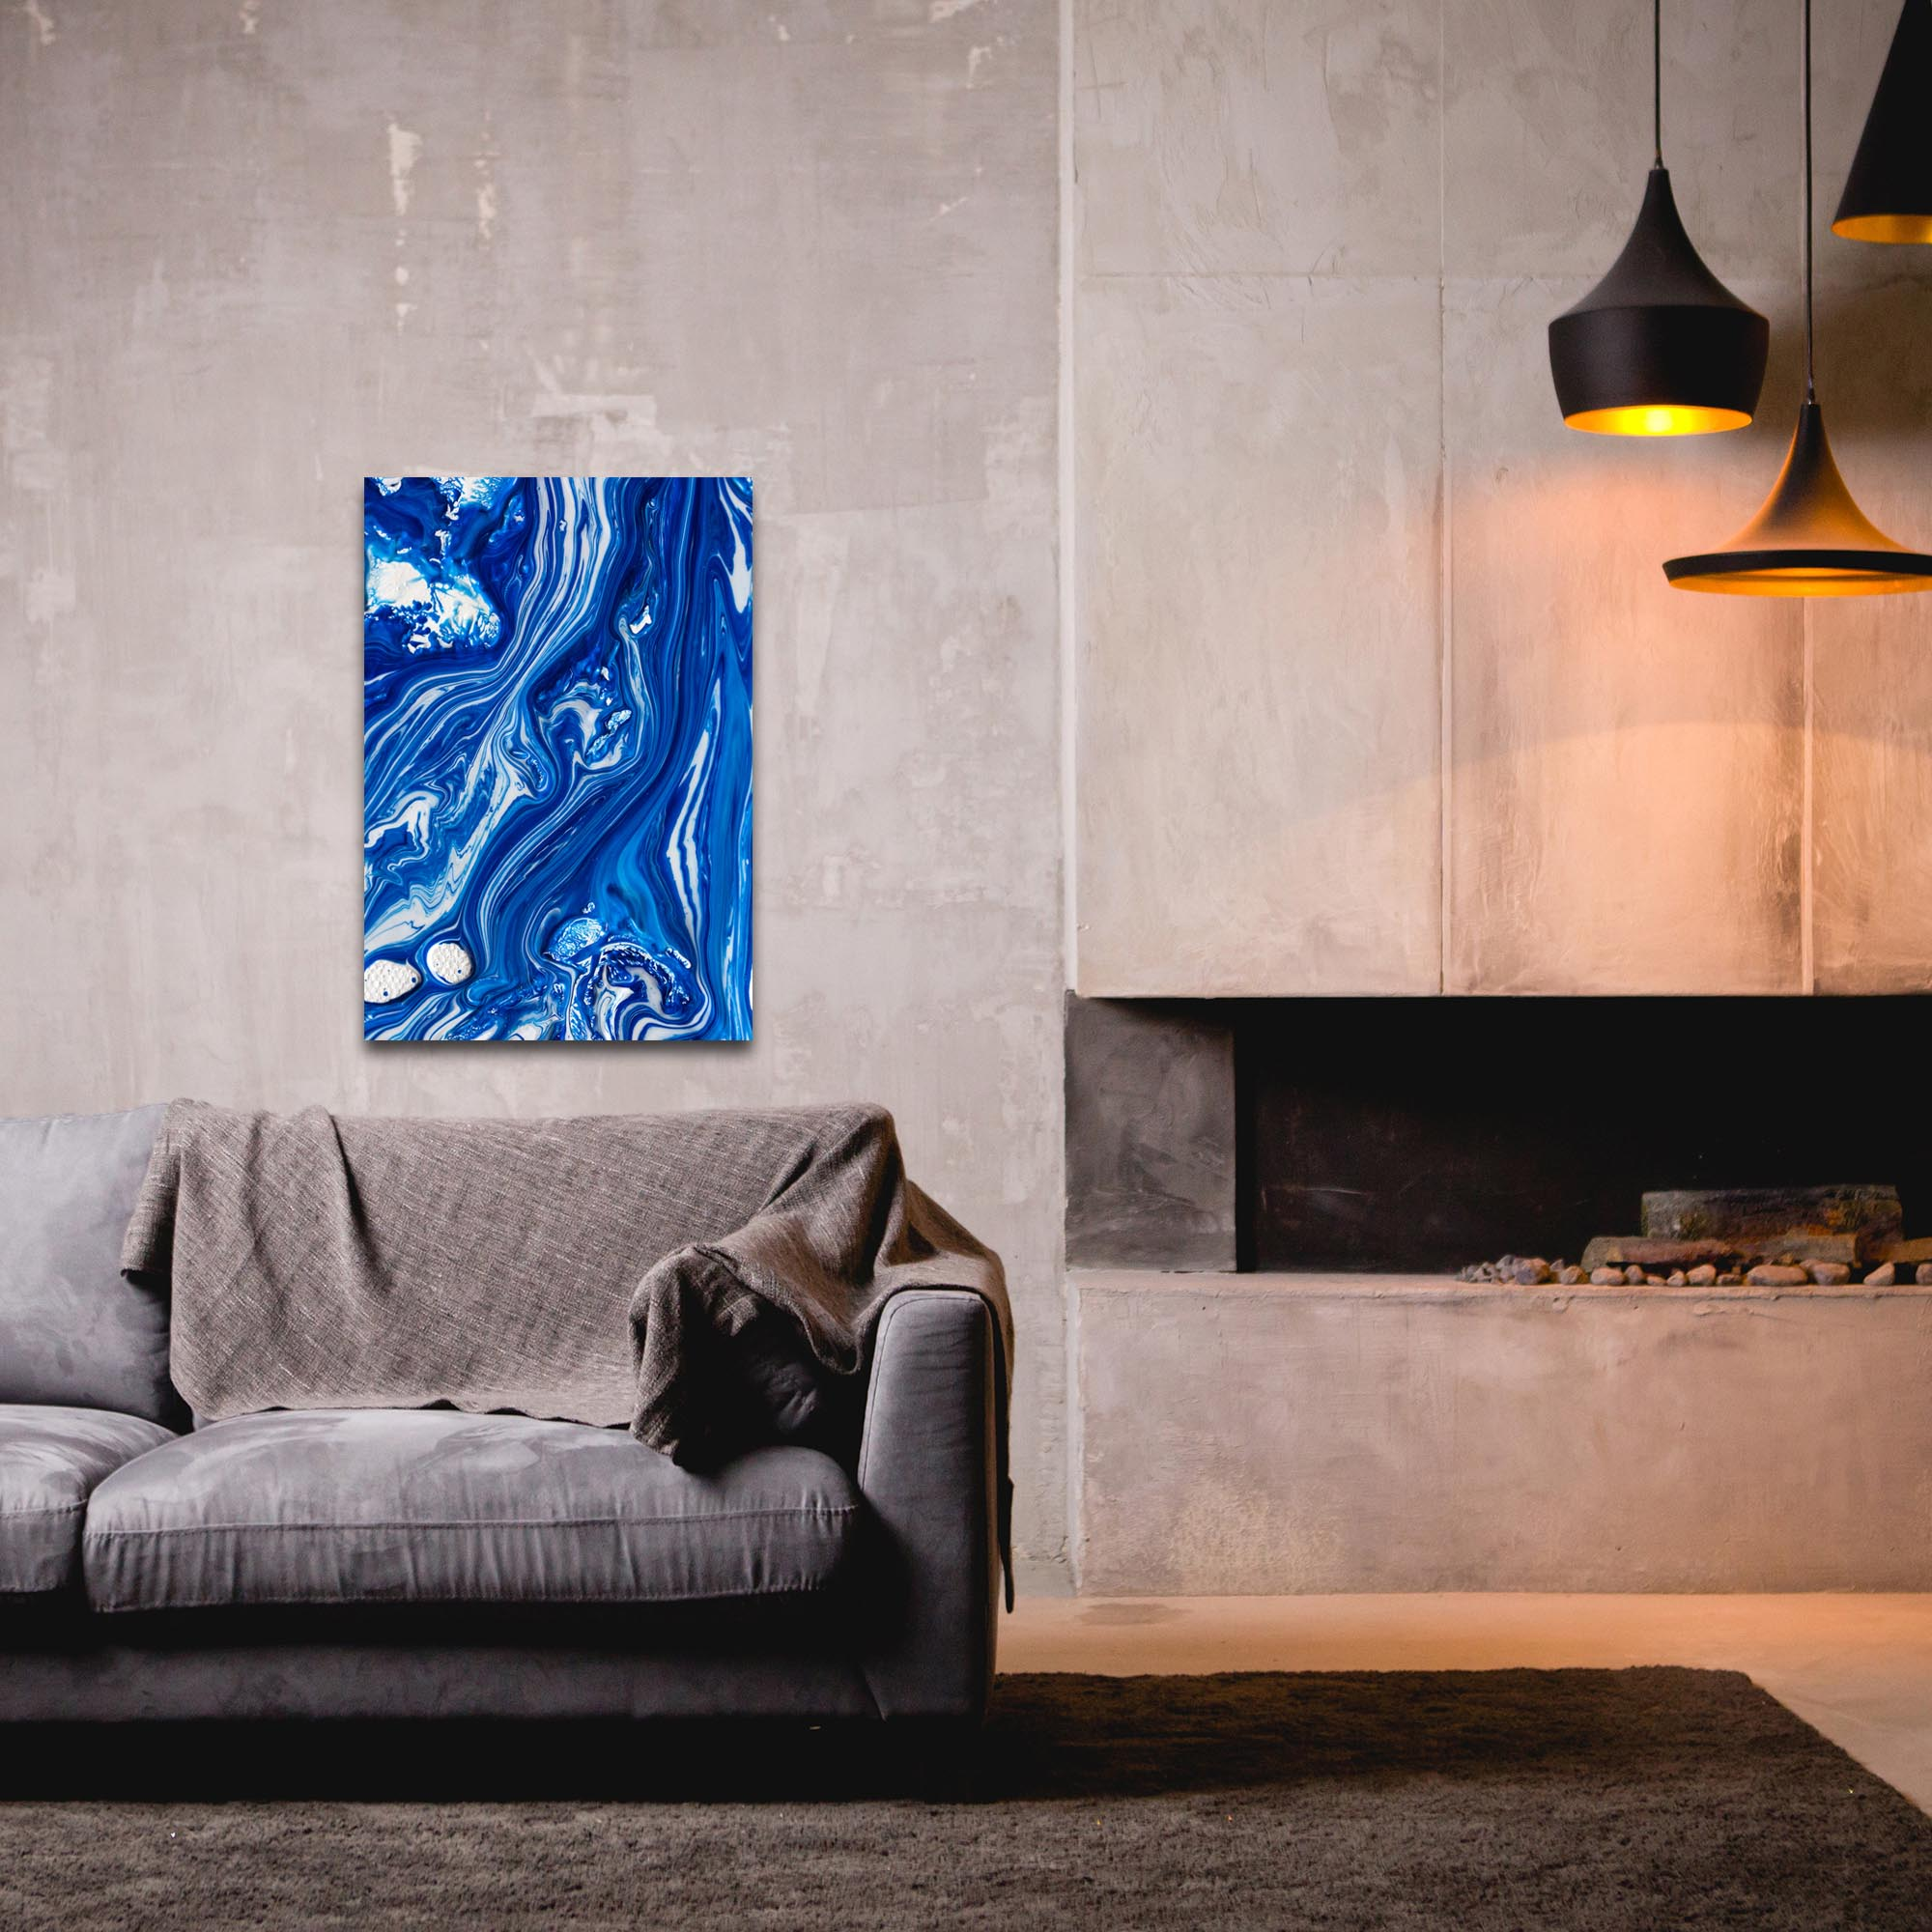 Abstract Wall Art 'Coastal Waters 6' - Colorful Urban Decor on Metal or Plexiglass - Lifestyle View